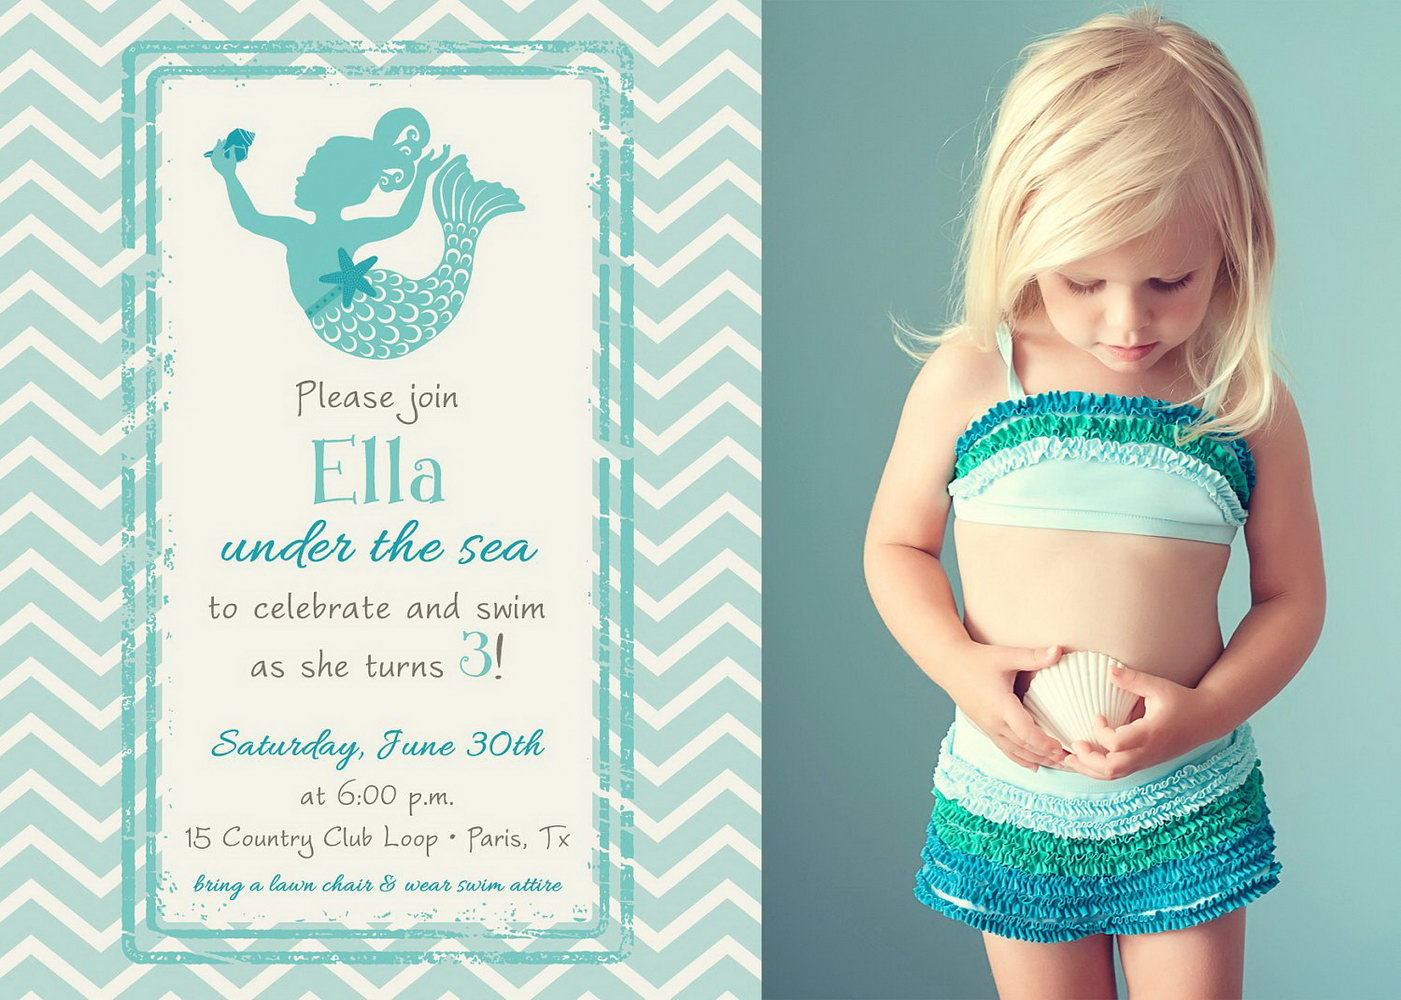 Mermaid Tail Invitation Template